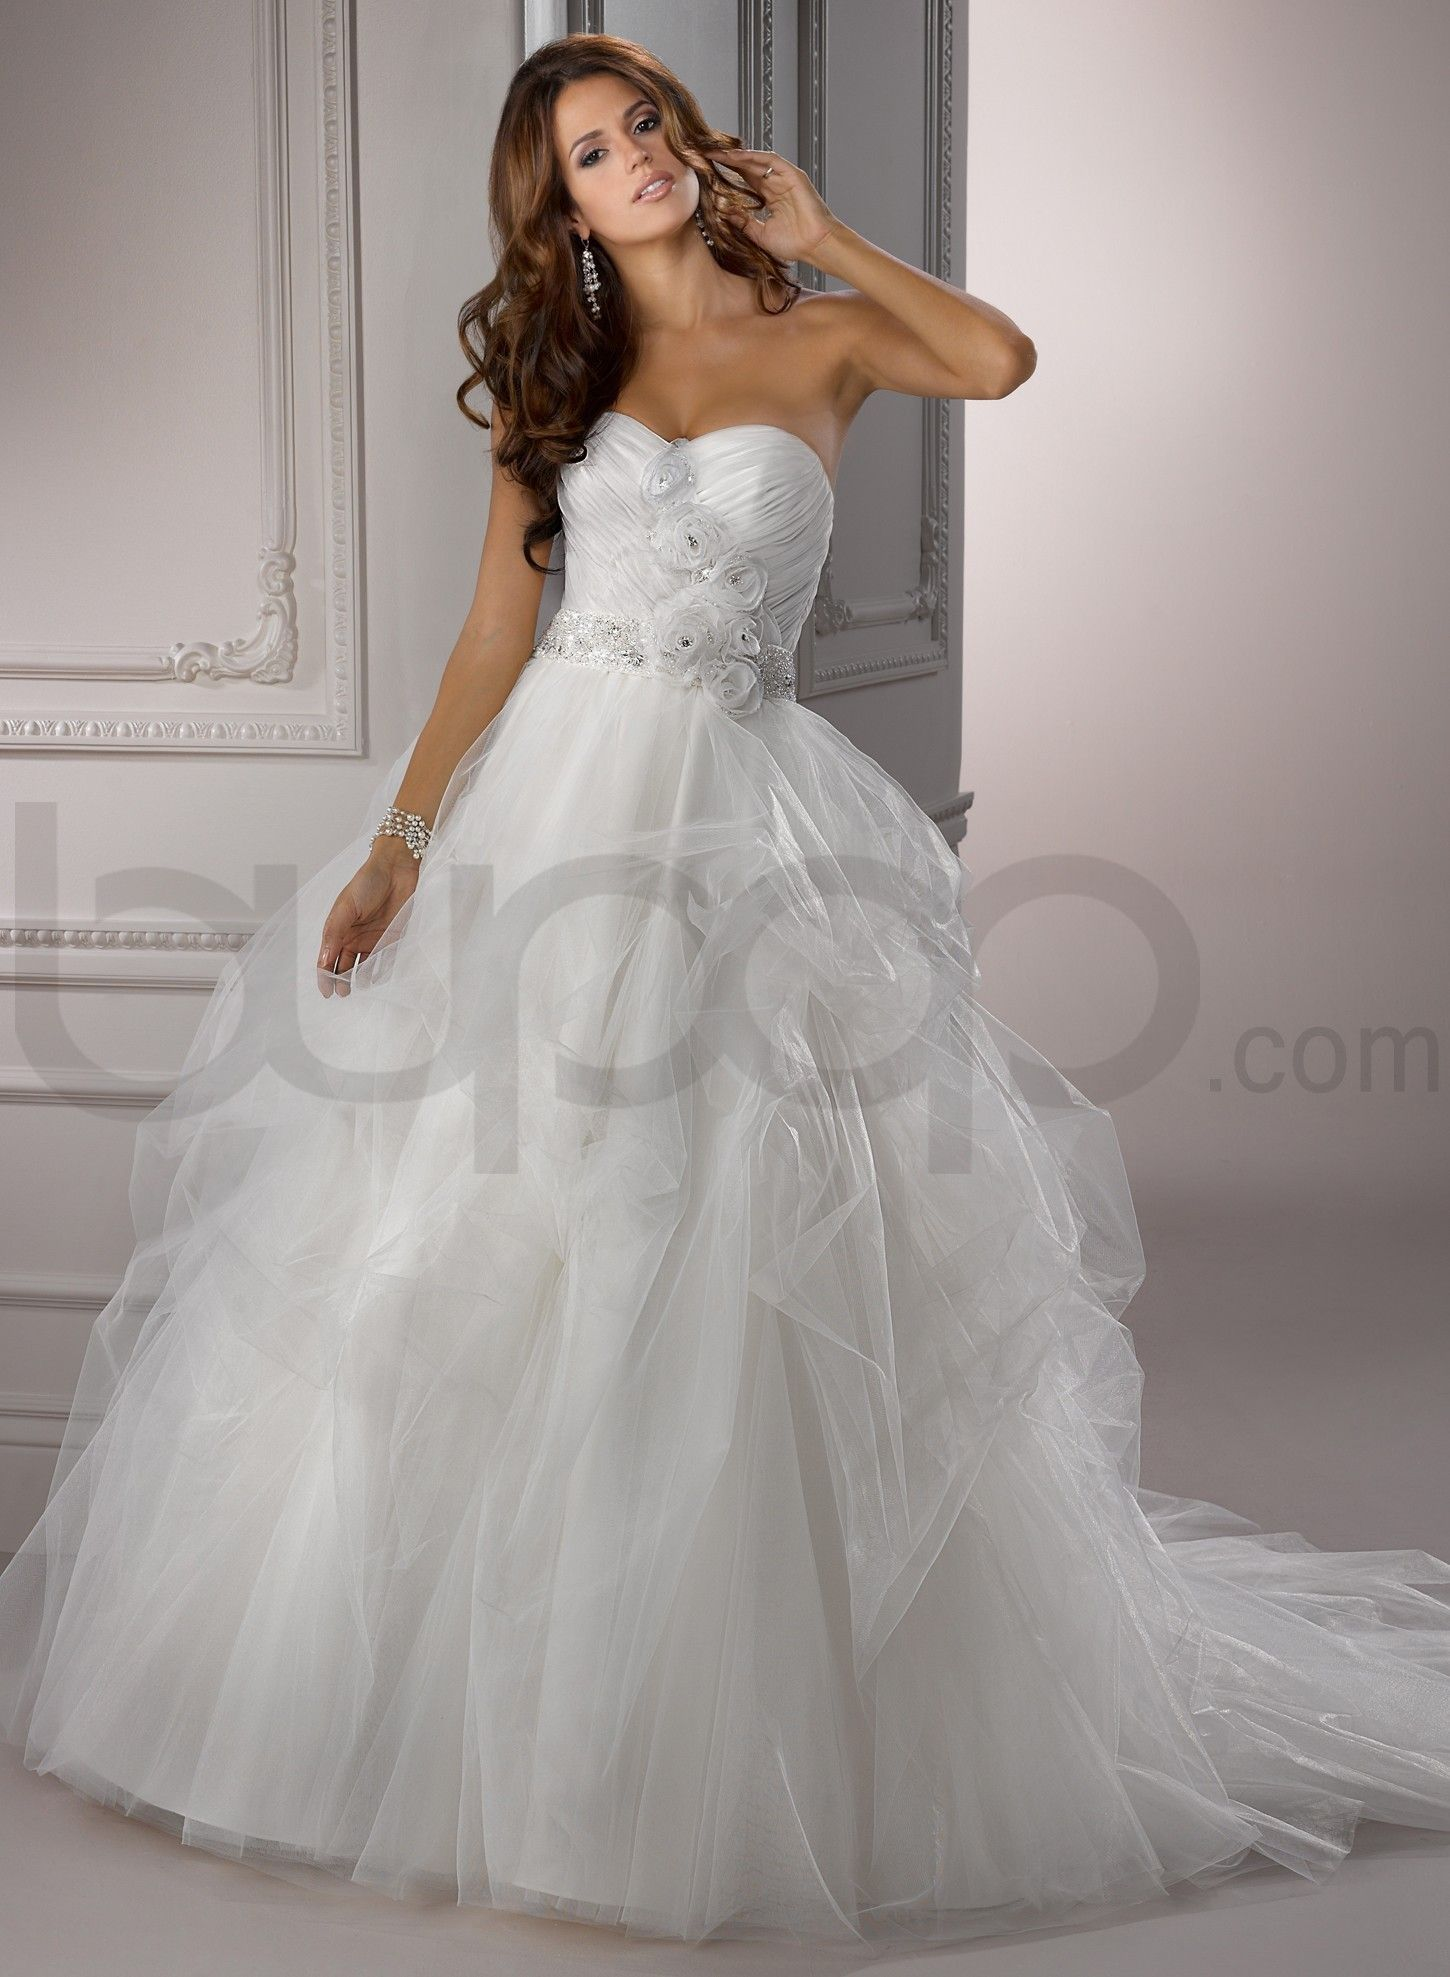 Wedding dresses ball gown sweetheart  Chic Organza Sweetheart Neckline Ball Gown Wedding Dress  Wedding